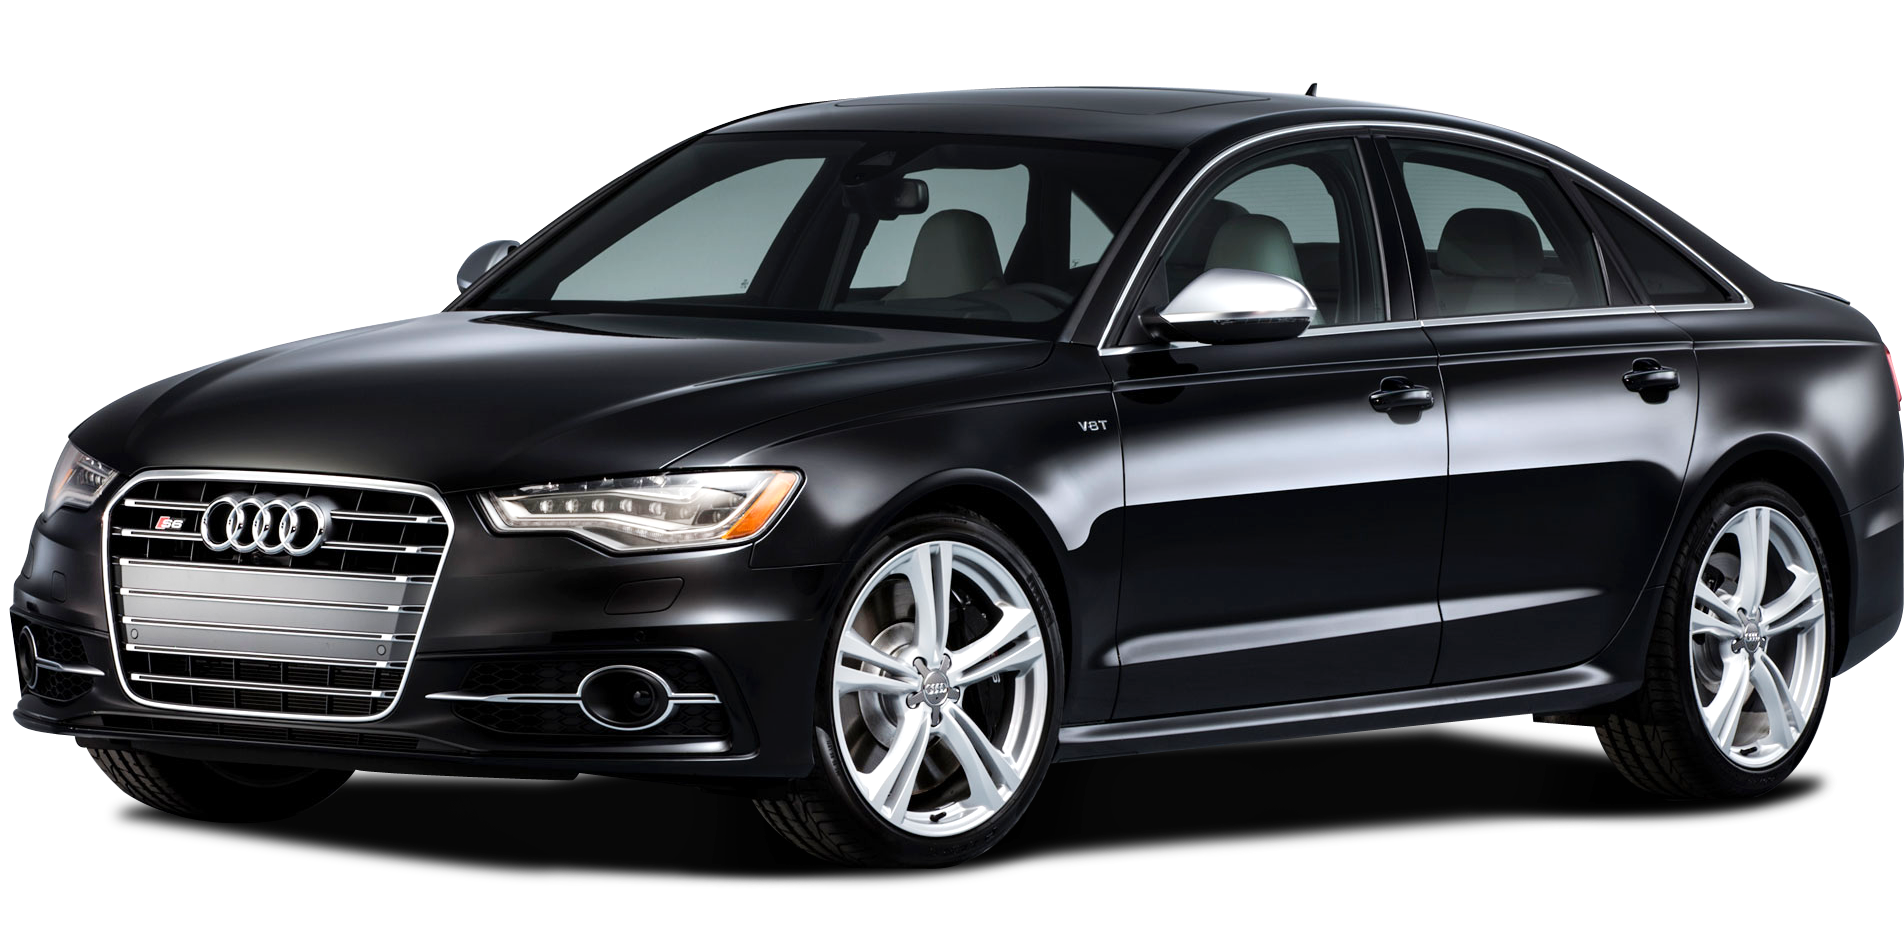 Audi A4 Car PNG Image Black Side View image #45306